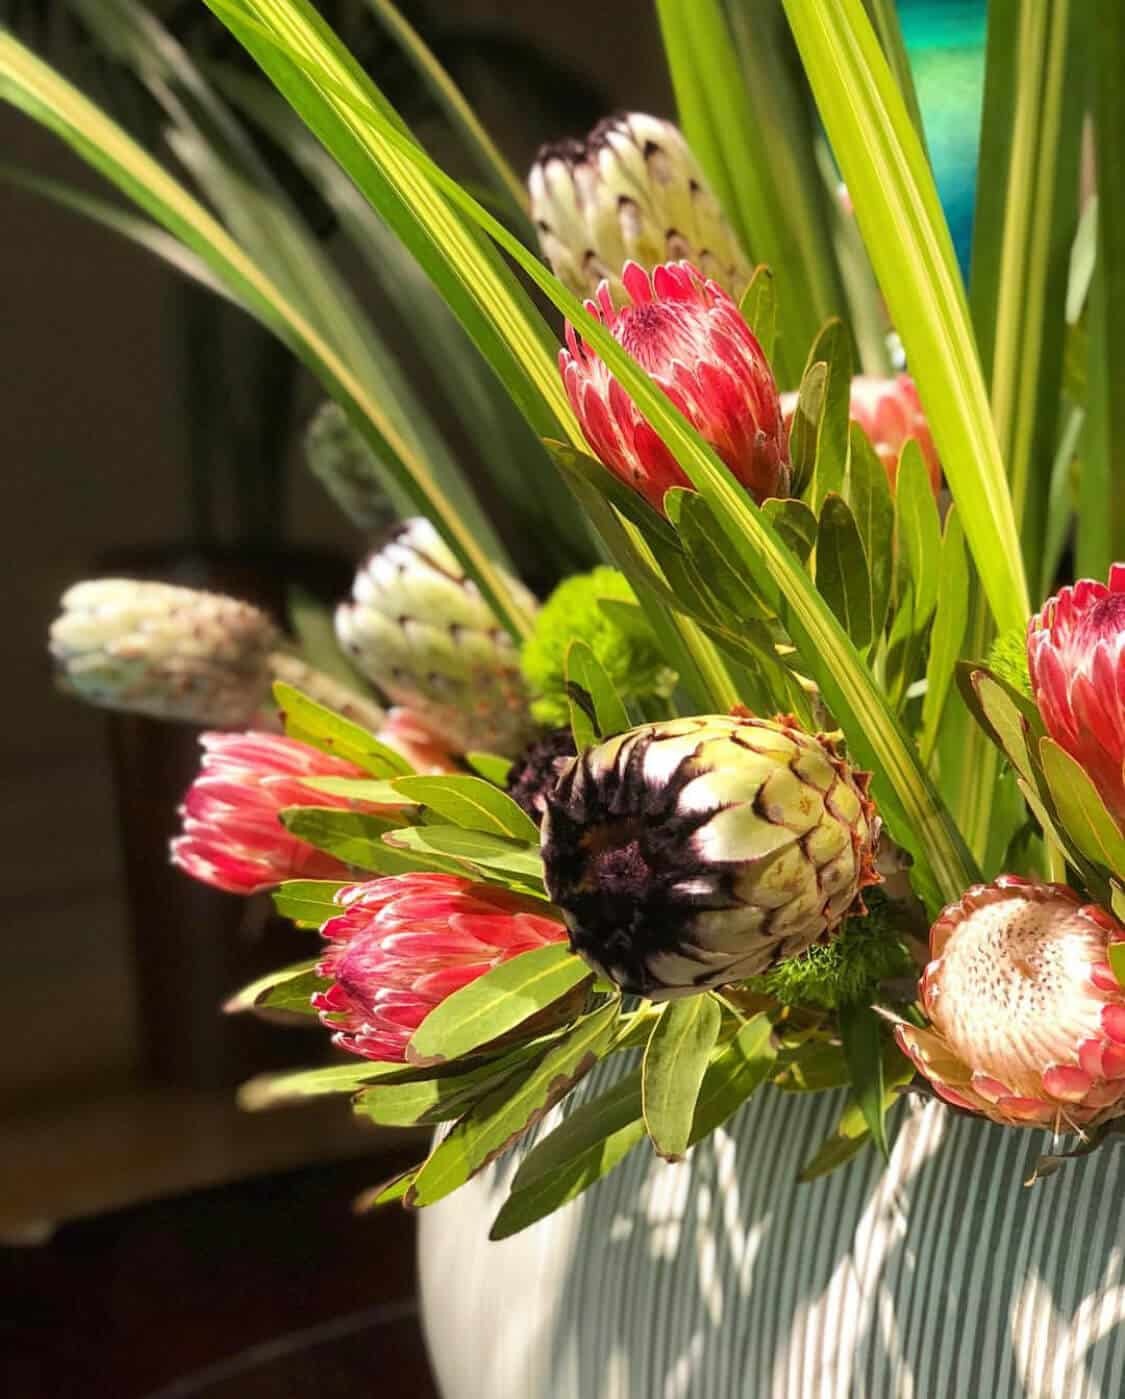 Protea display at The Umstead Hotel and Spa